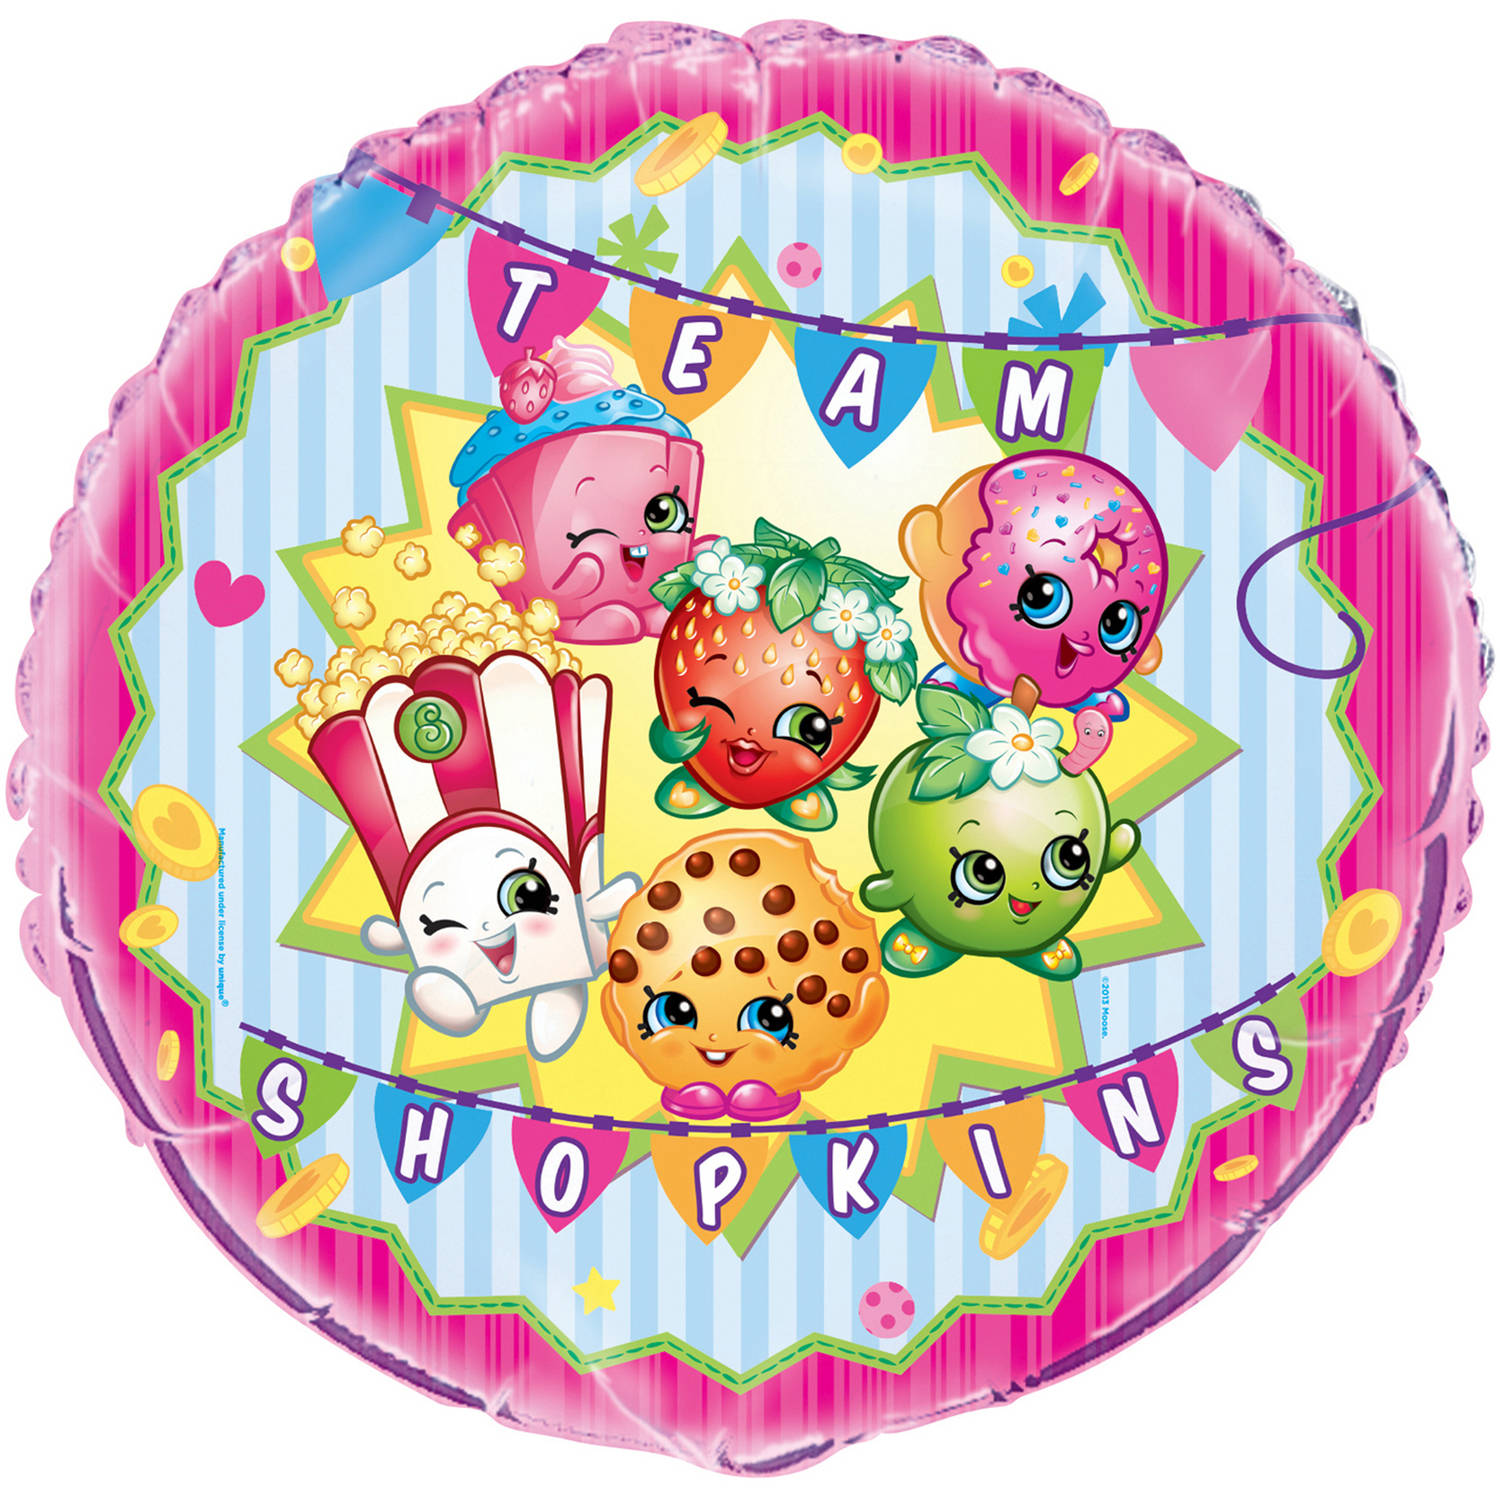 Foil Shopkins Balloon, 18 in, 1ct